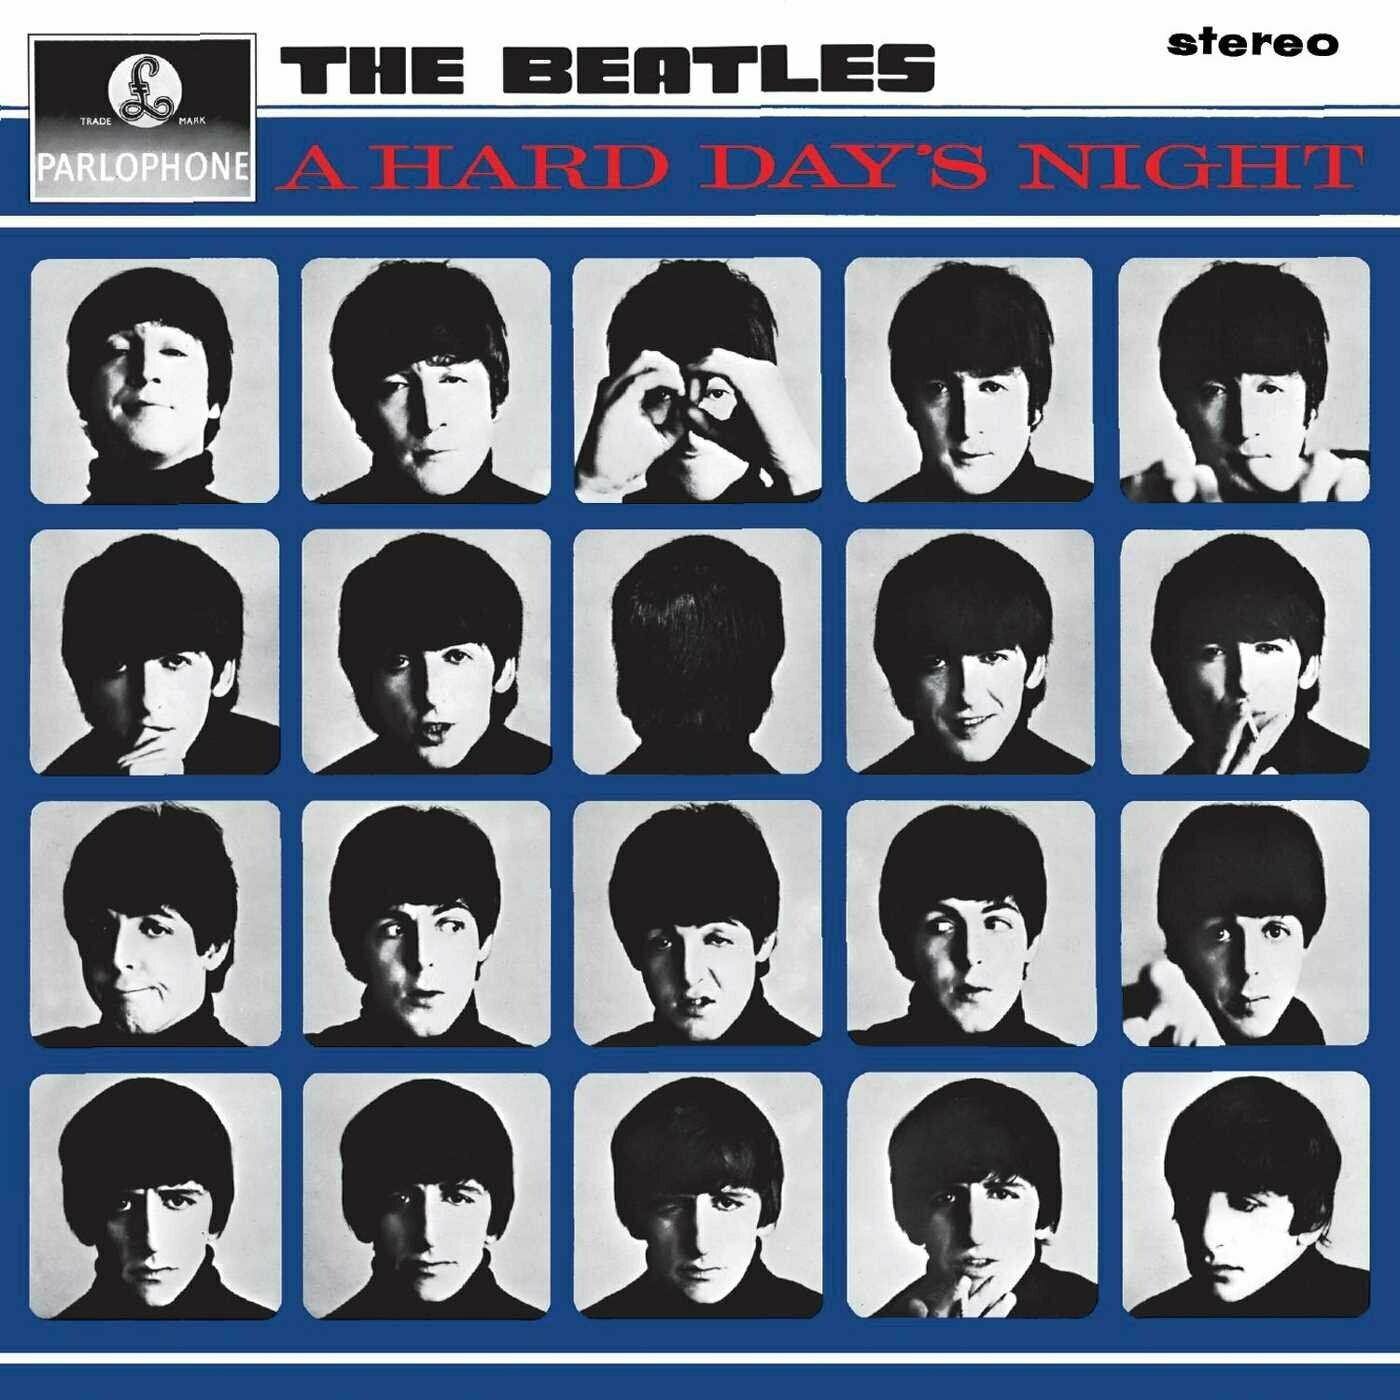 """The Beatles """"A Hard Day's Night"""" *STEREO*"""